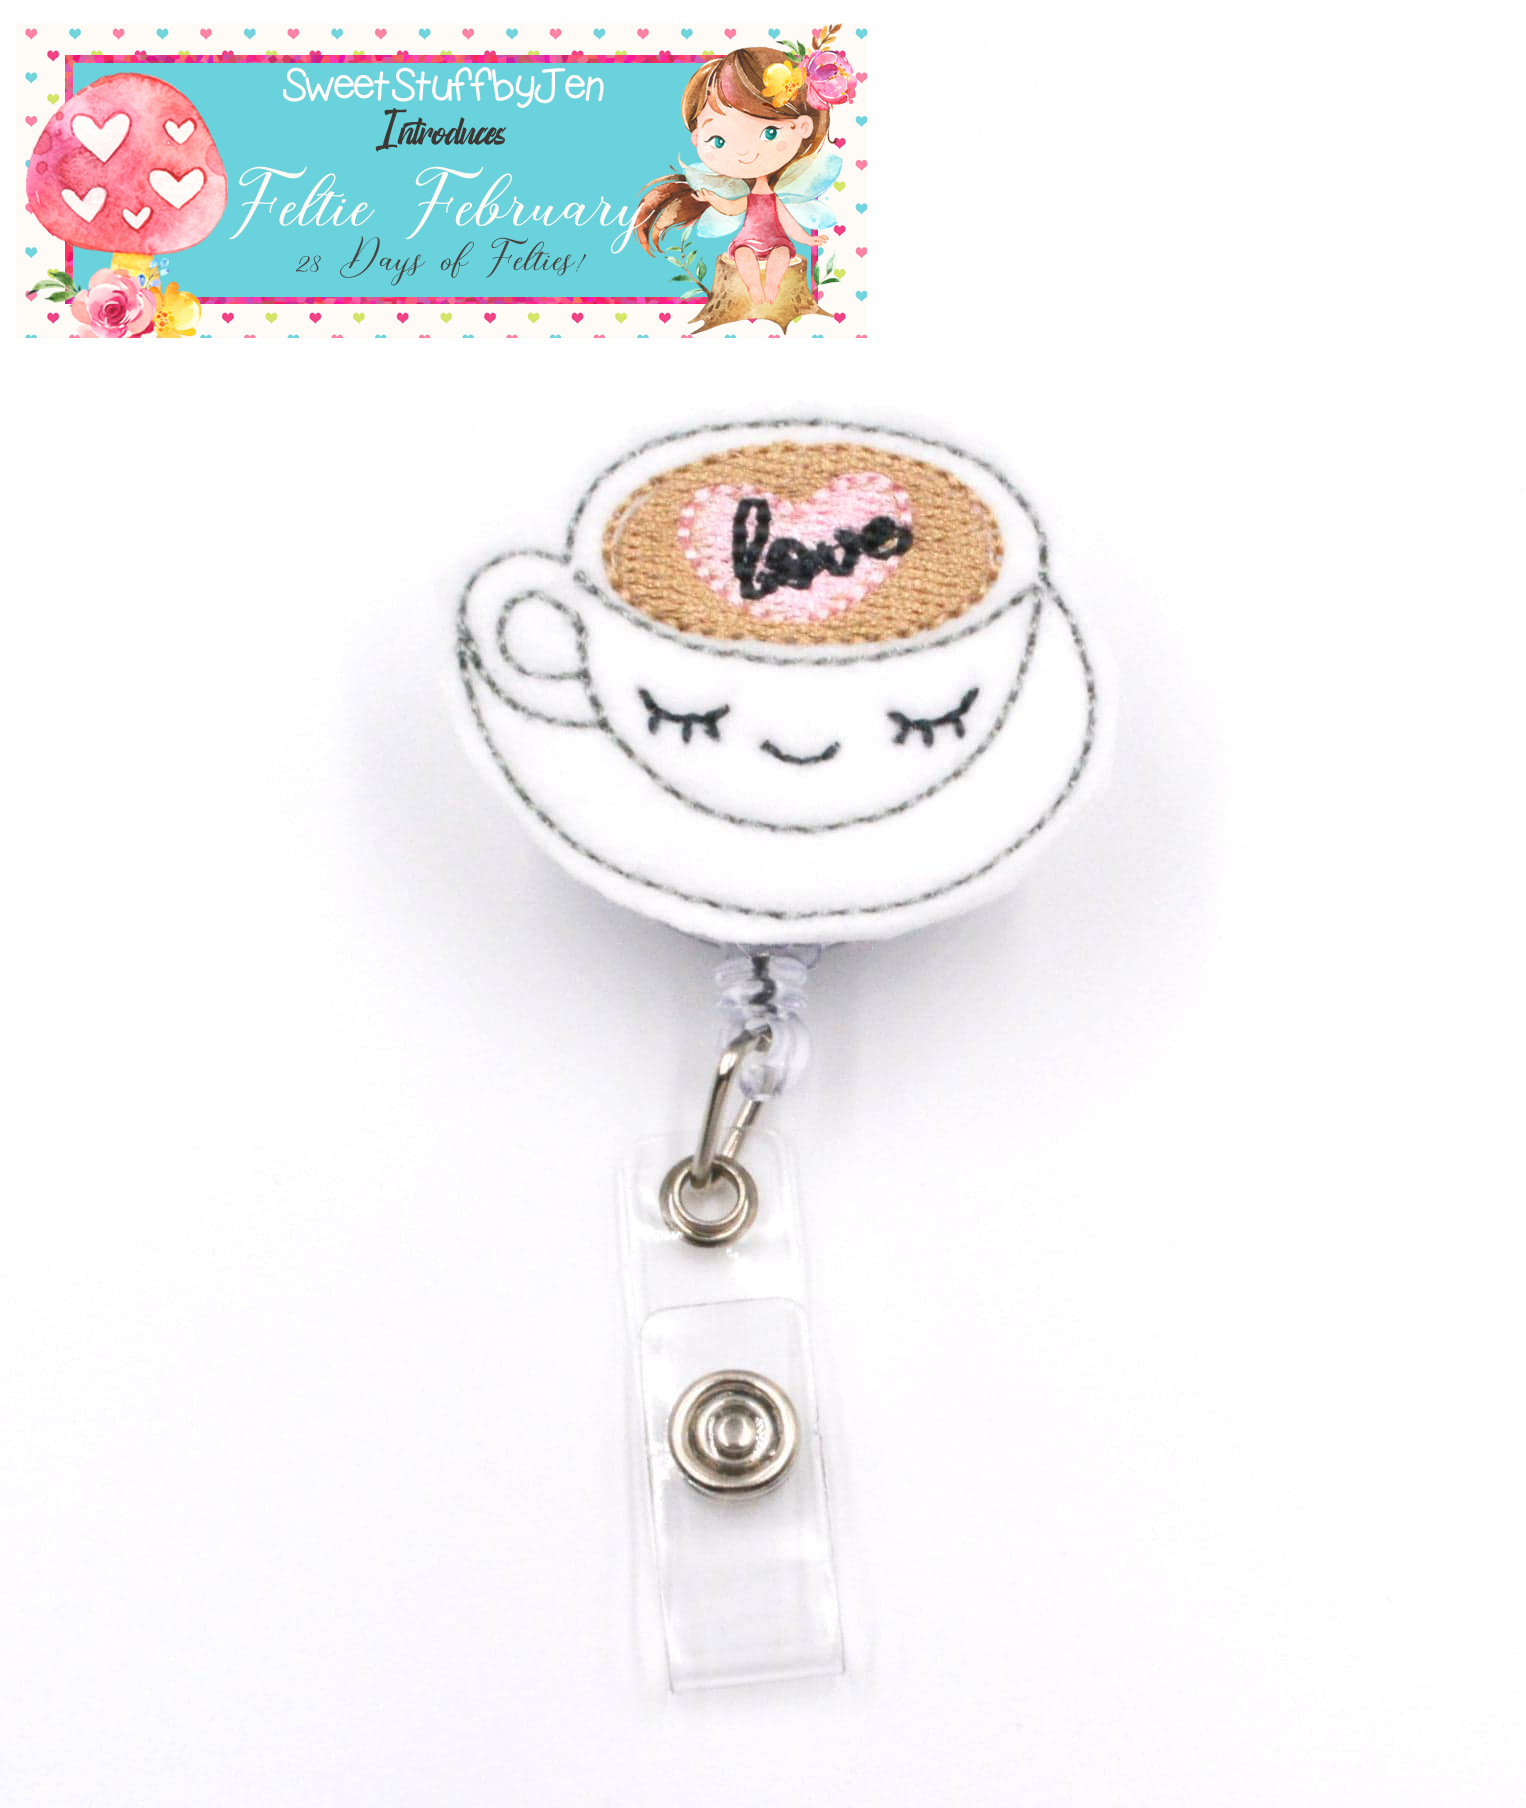 SSBJ Love Heart Coffee Embroidery File